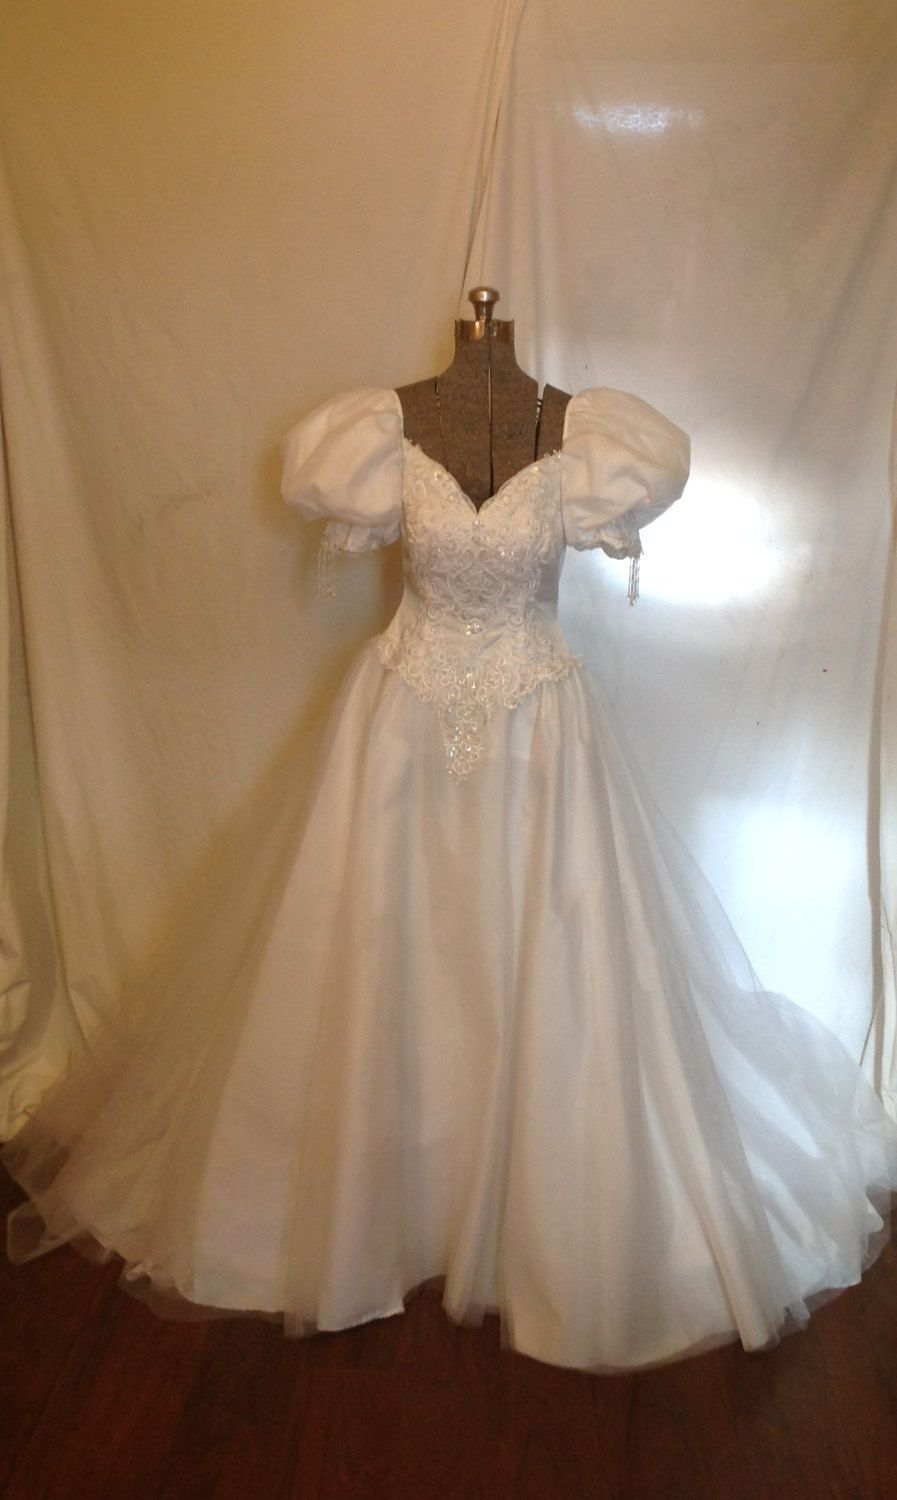 R E S E R V E D 1930s Dress Lace 30s Dress Wedding Etsy 1930s Wedding Dress Wedding Dresses Vintage Wedding Gowns Vintage